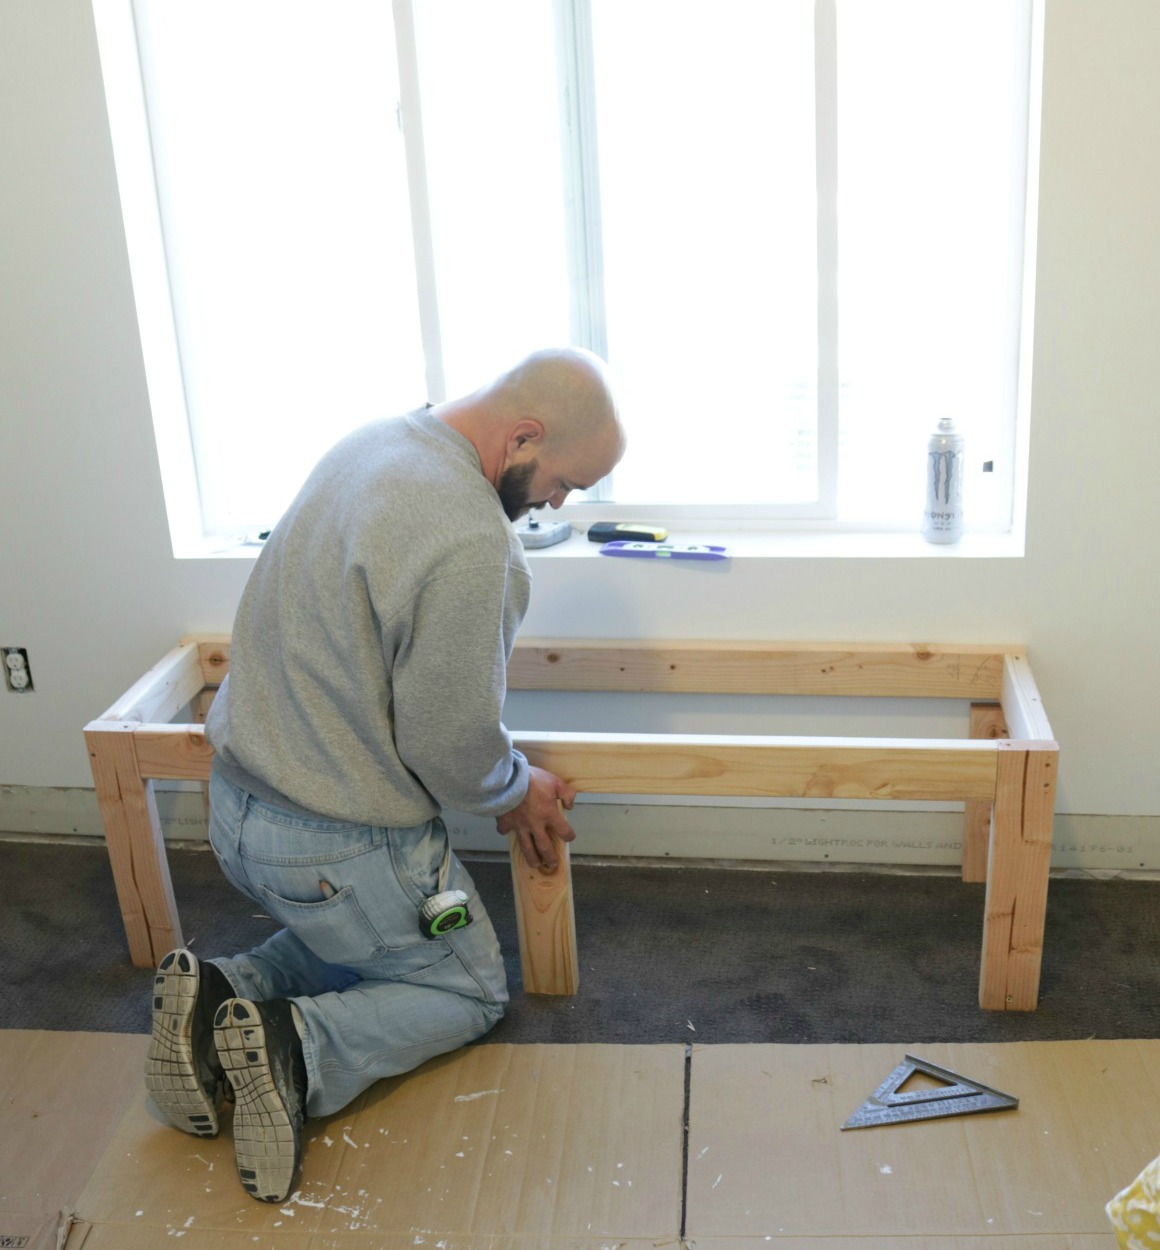 Building A Backyard Gym: How To Build A Window Seat And Built-In Bookcase Tutorial